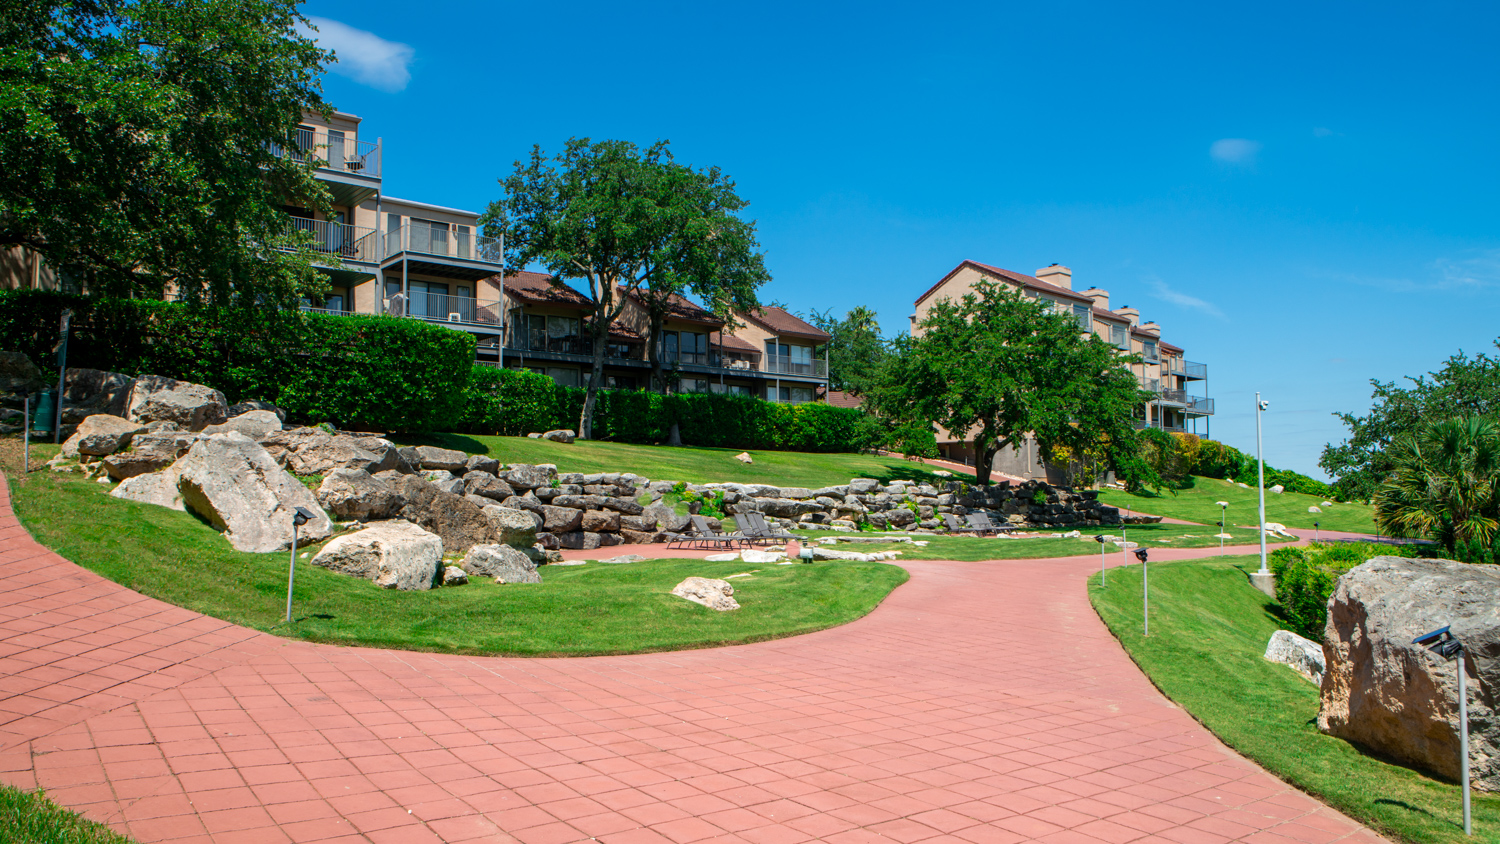 commercial-landscaping-VillasAtTravis-hill-walkway-grass-stonewall-trees-1